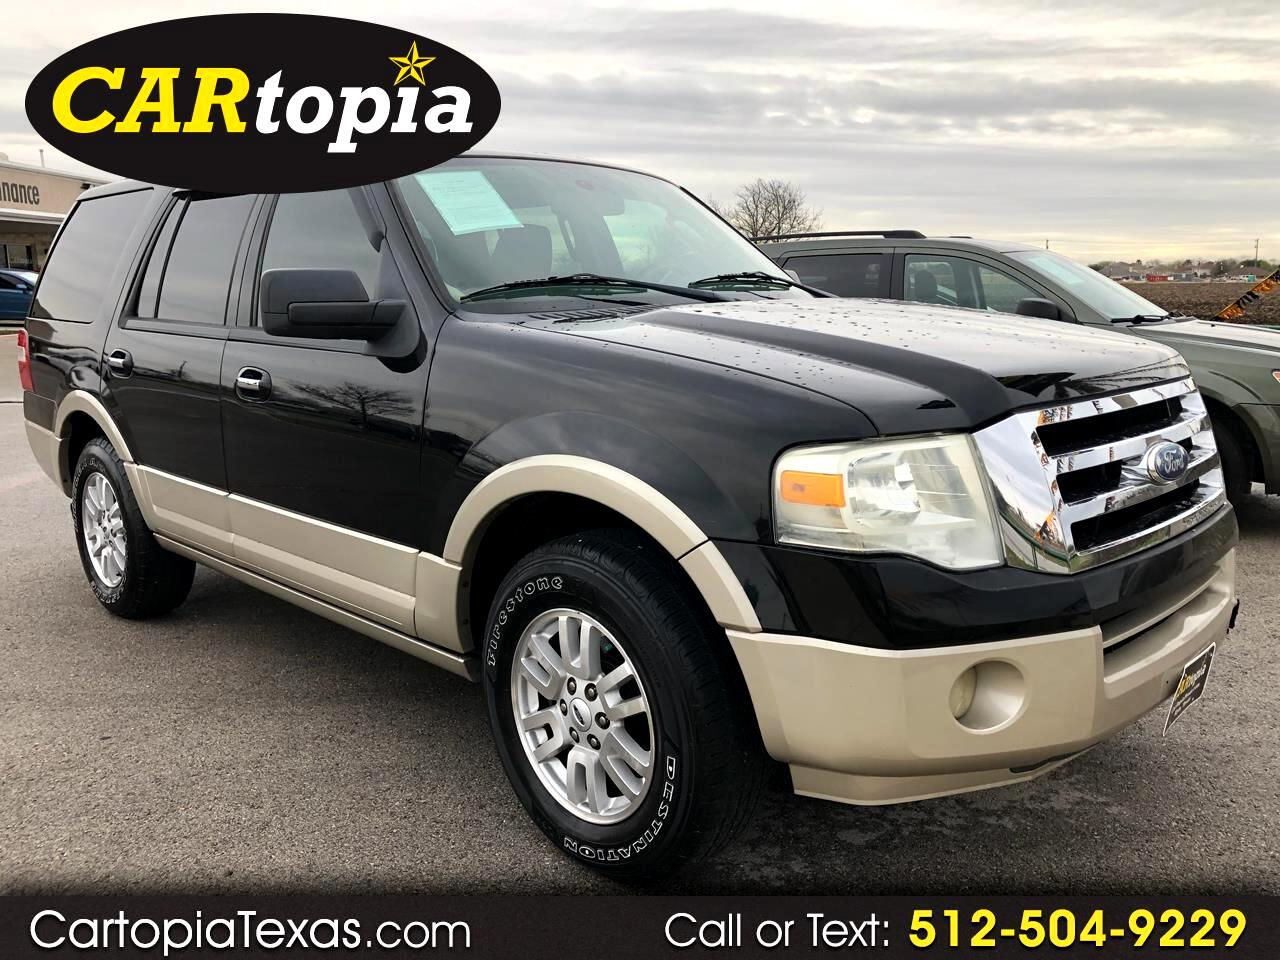 2009 Ford Expedition 2WD 4dr Eddie Bauer